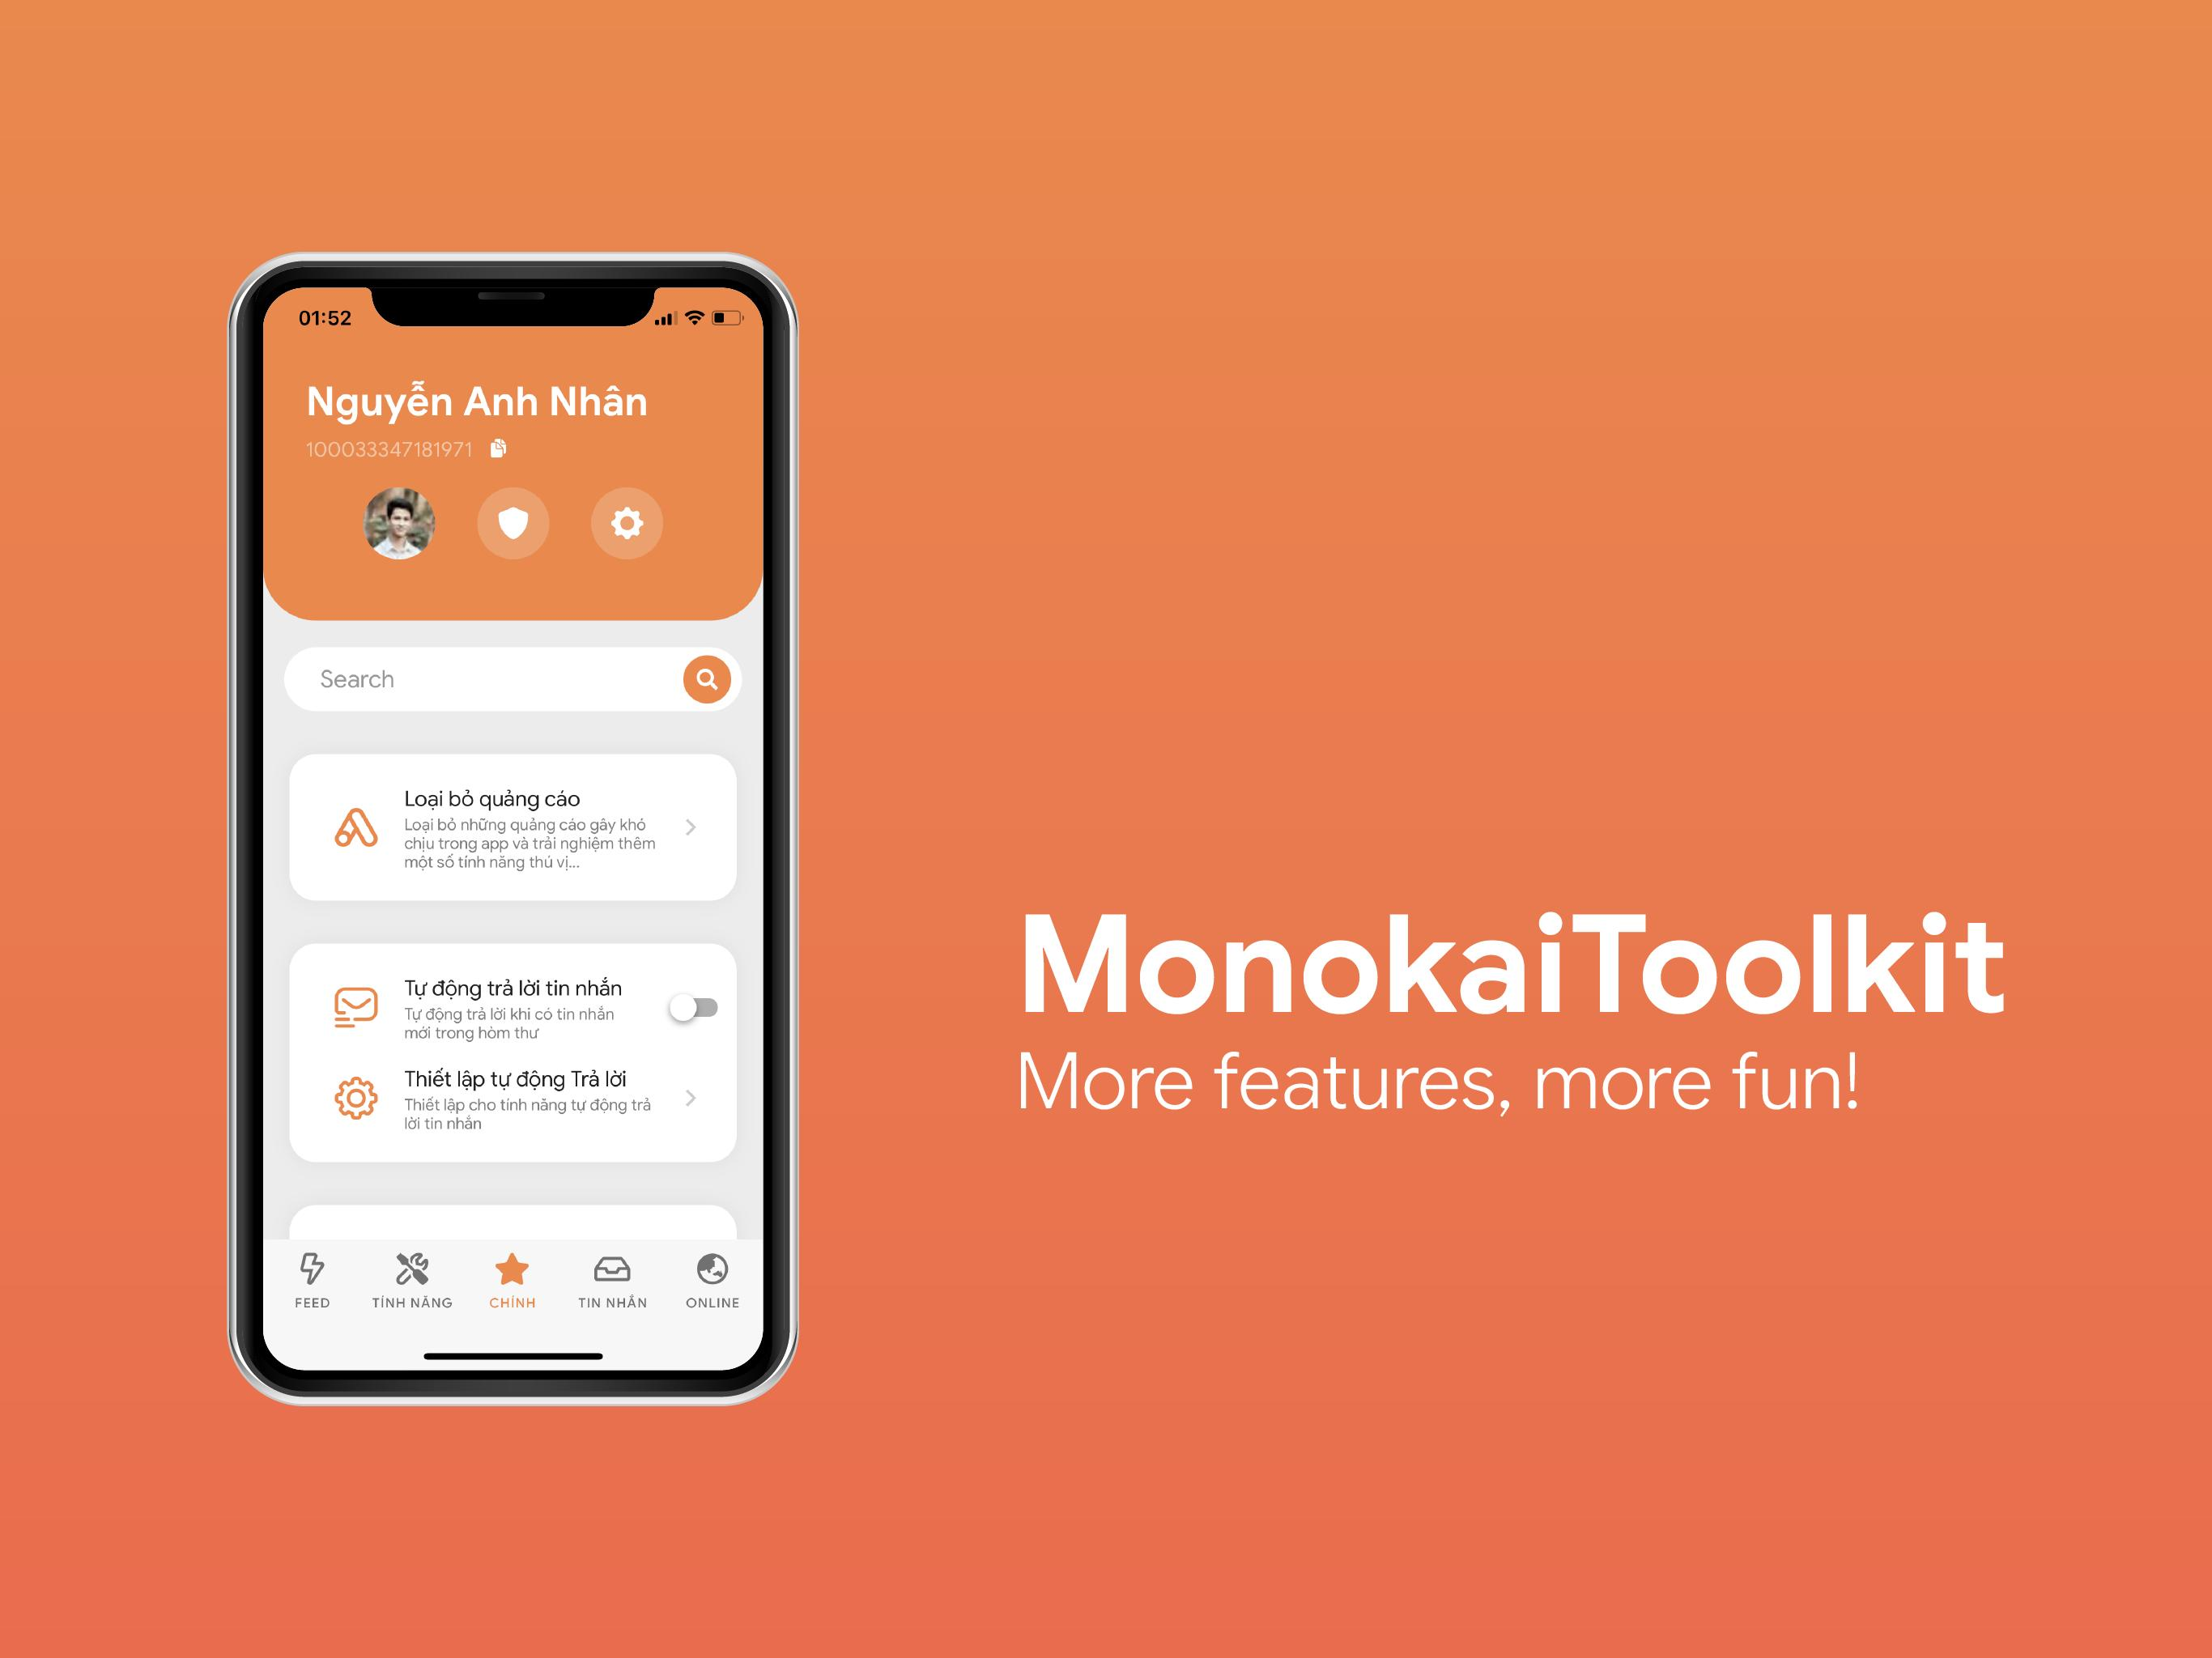 MonokaiToolkit - Super Toolkit for Facebook Users